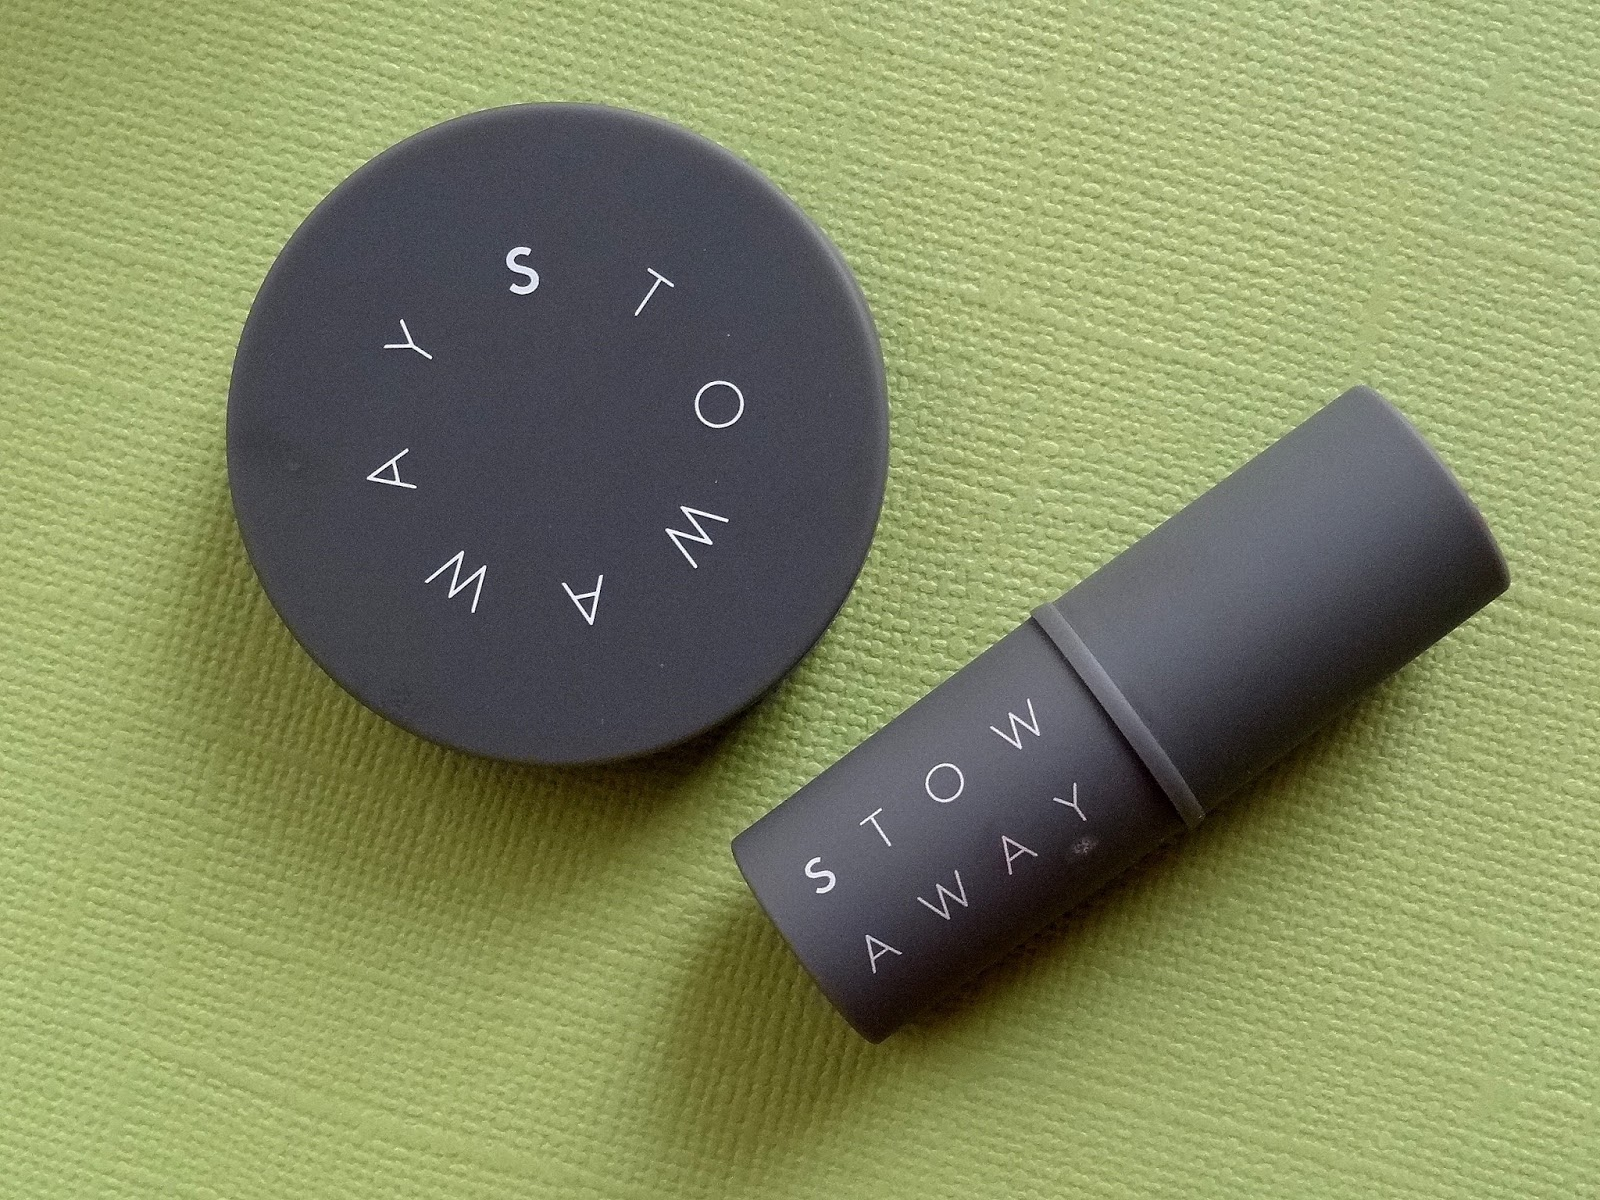 Stowaway Cosmetics Creme Lipstick in Scarlet and Cheek and Lip Rouge in Burnt Rose Review, Photos, Swatches